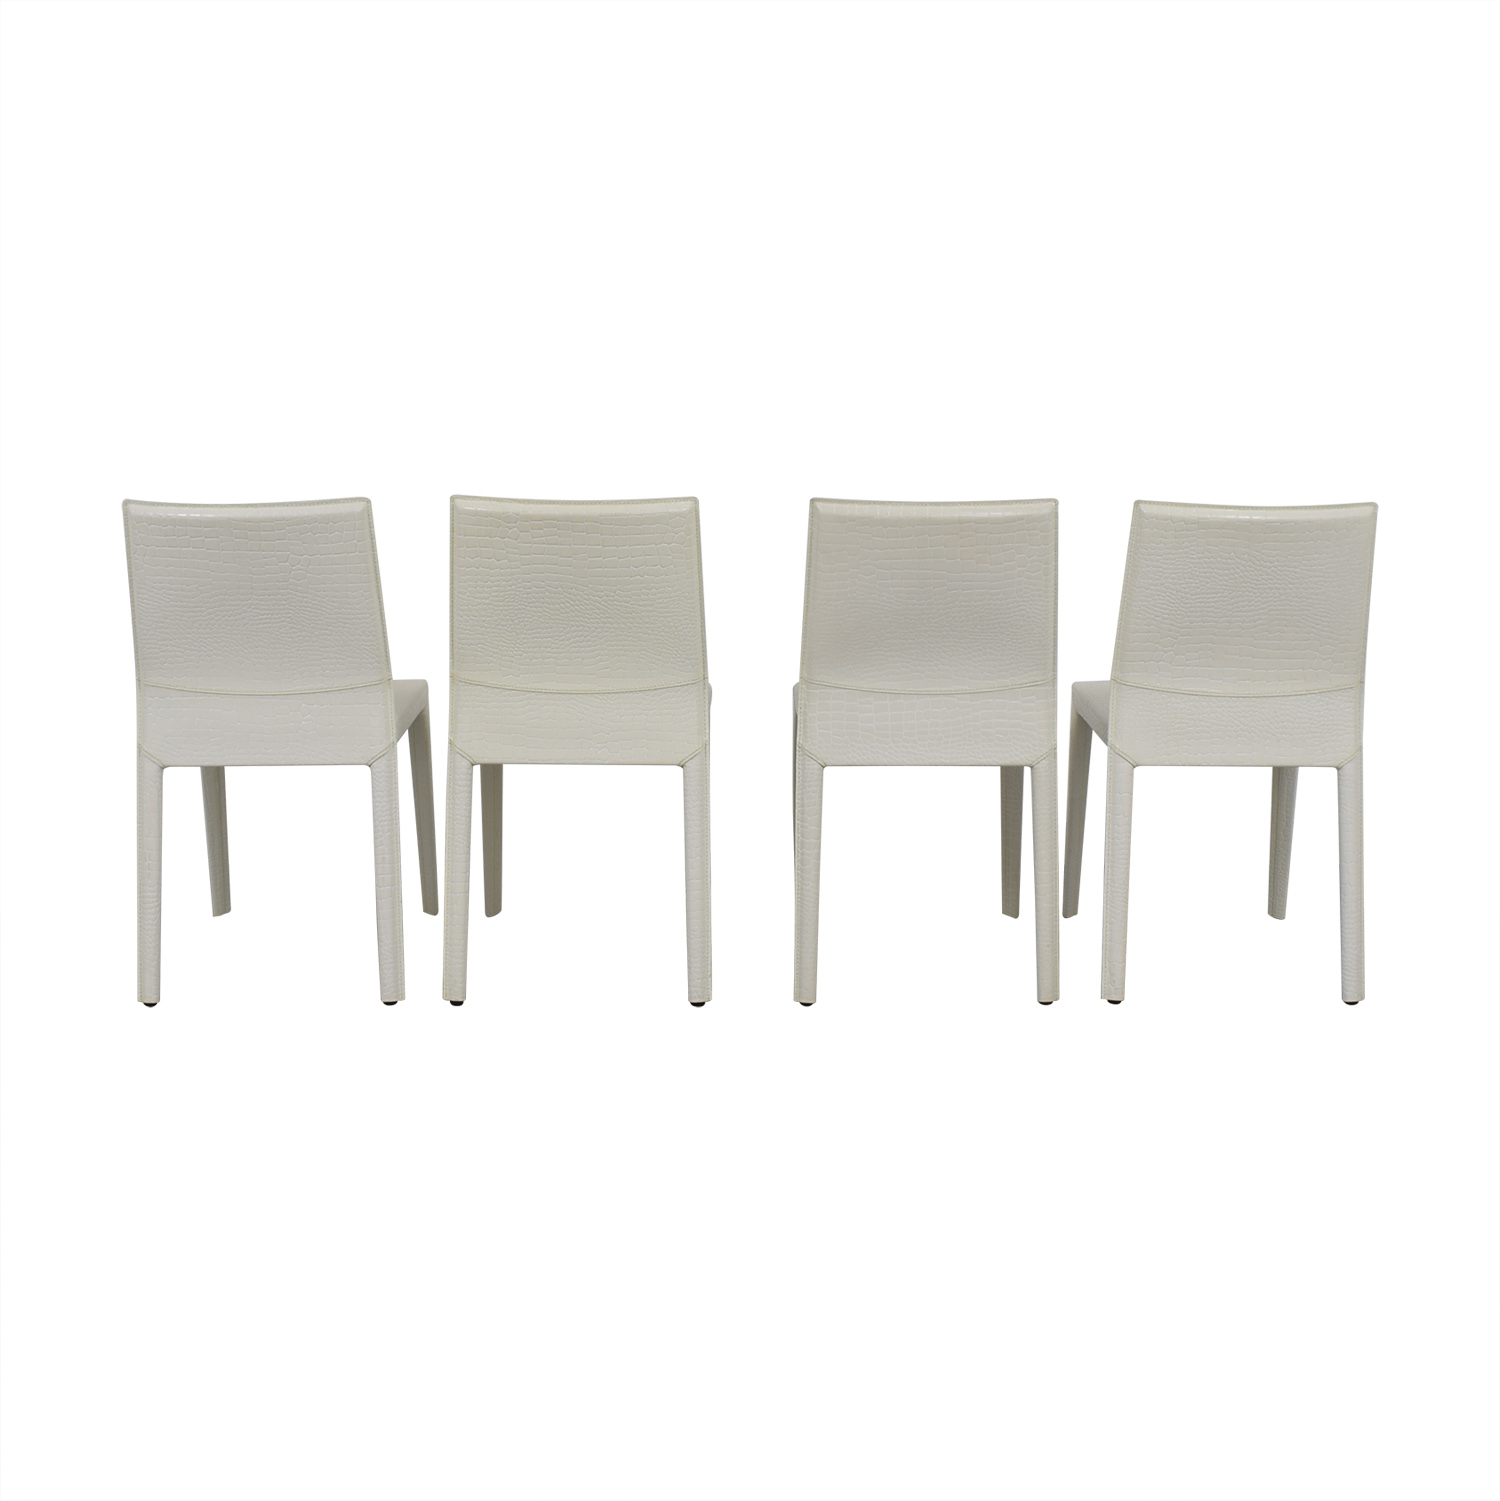 Nicoletti White Leather Embossed Croc Leather Dining Chairs Nicoletti